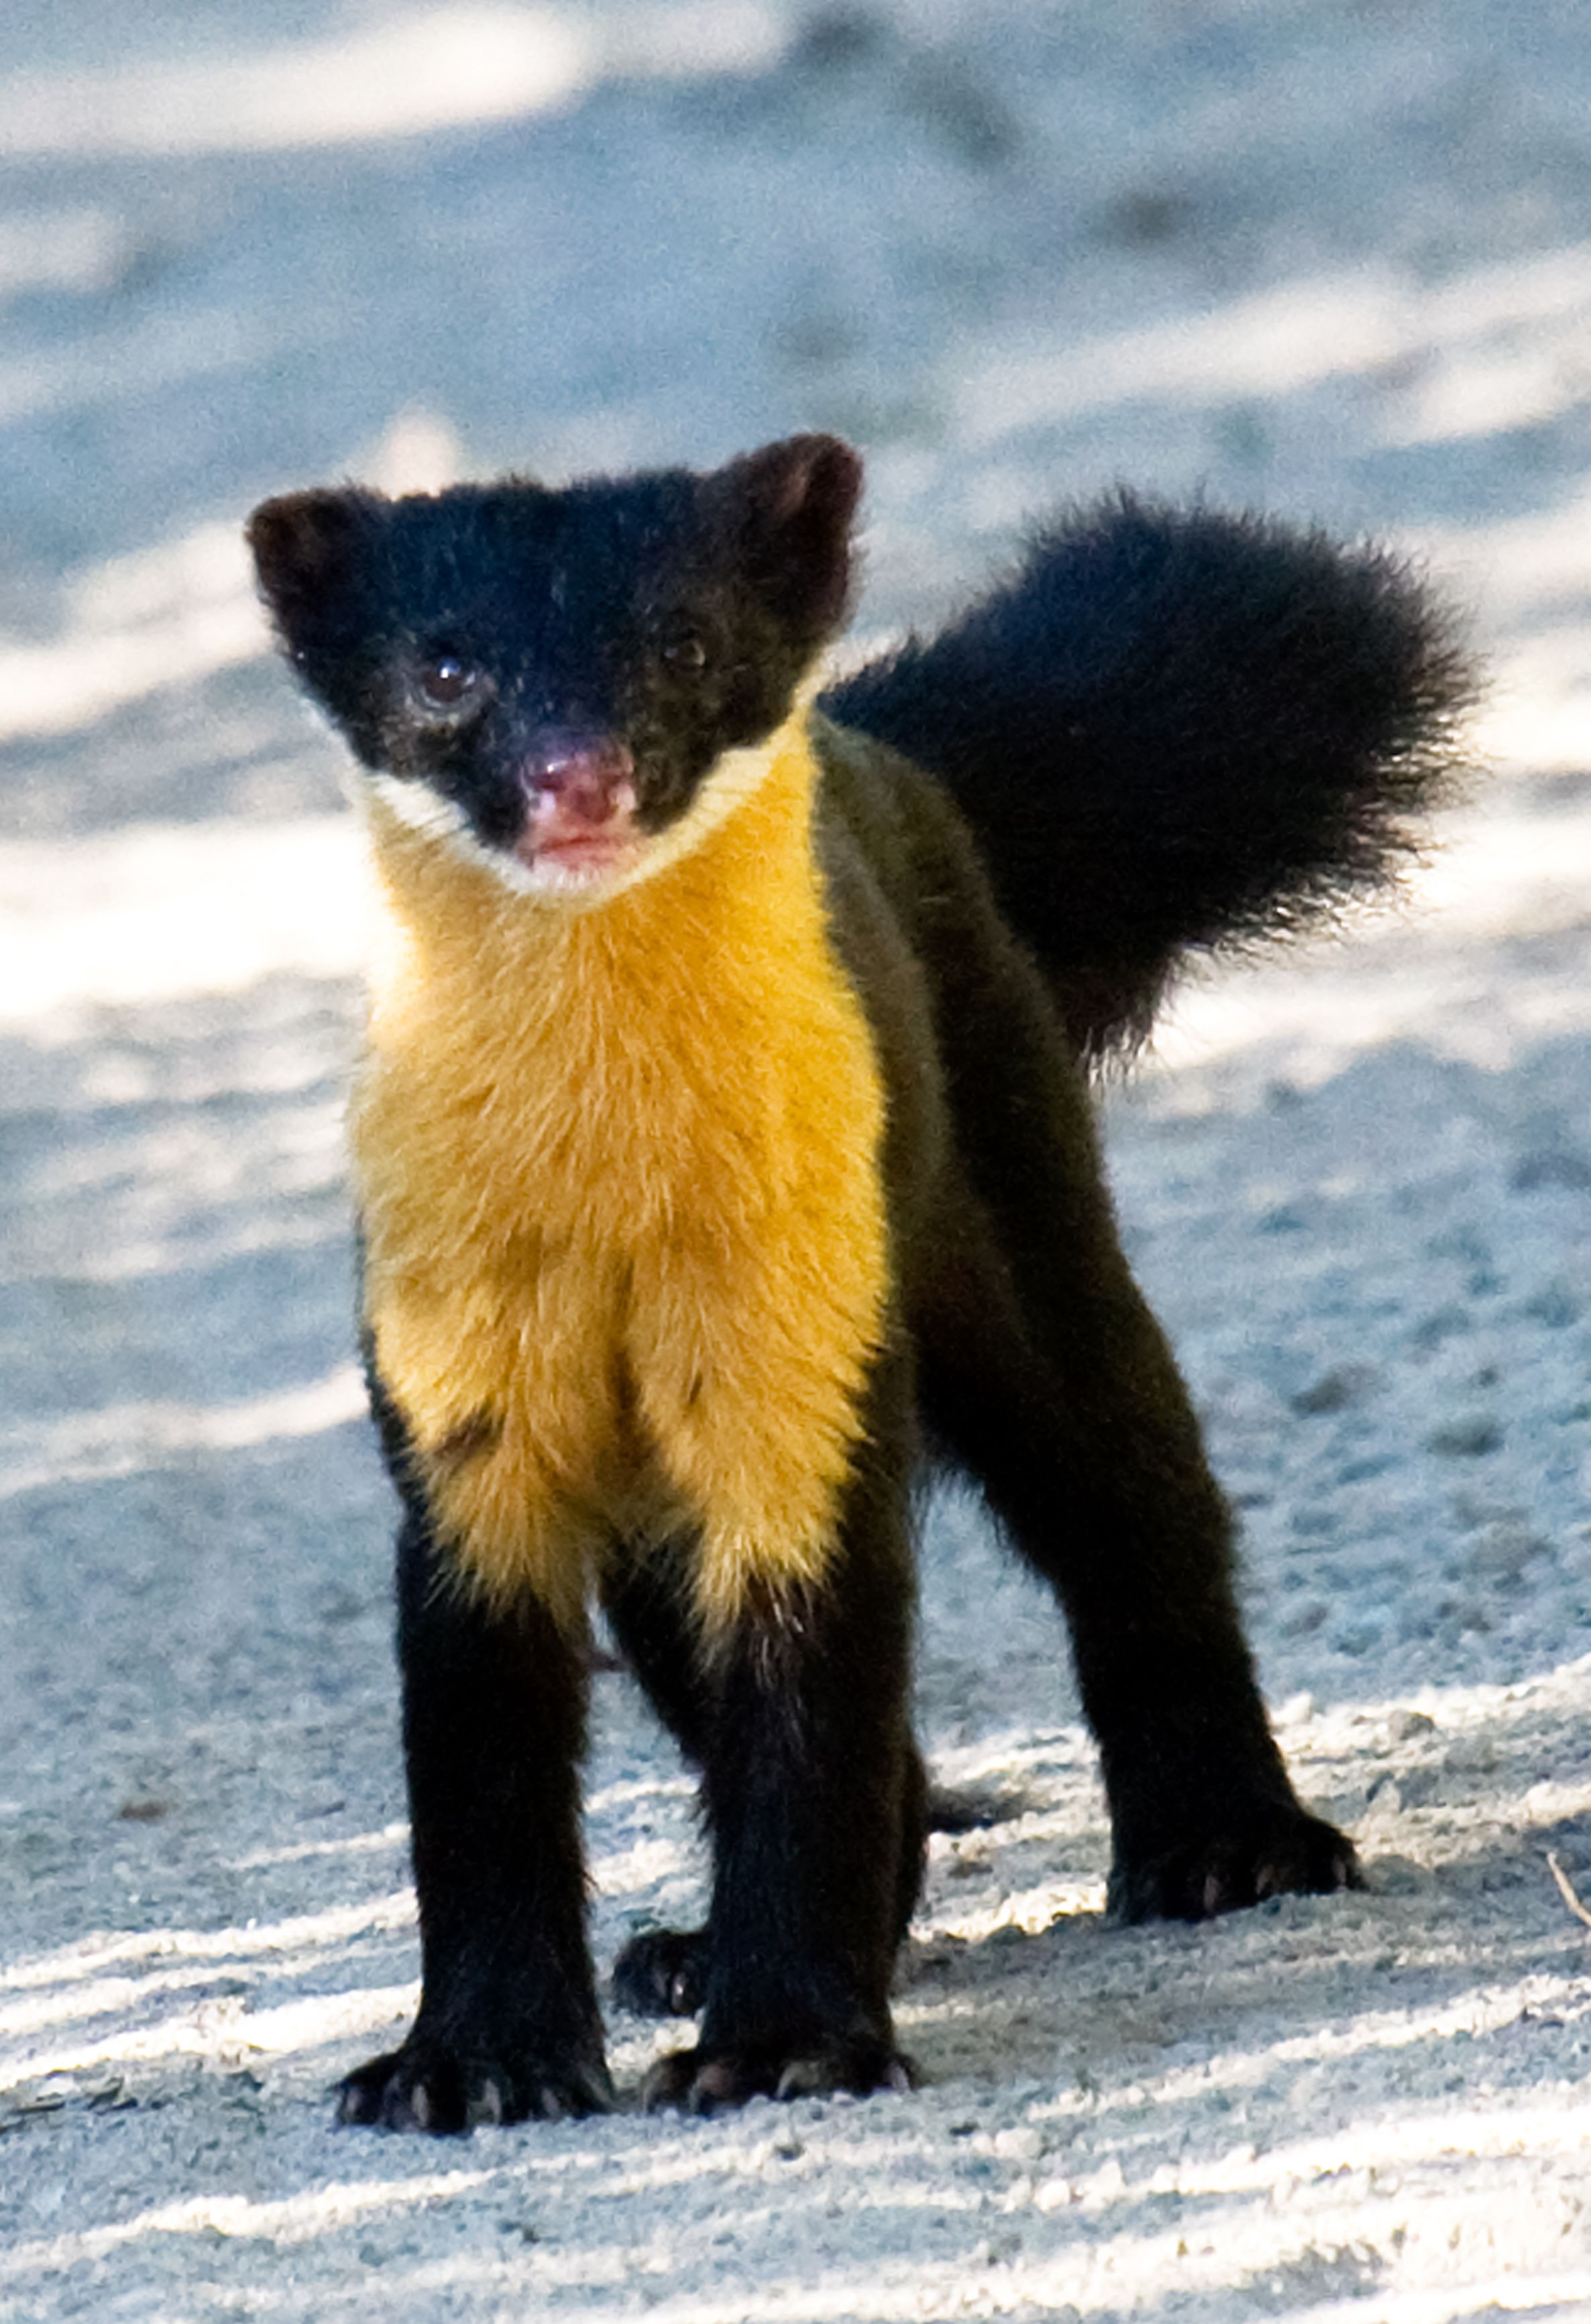 The Nilgiri marten can be found in southern India